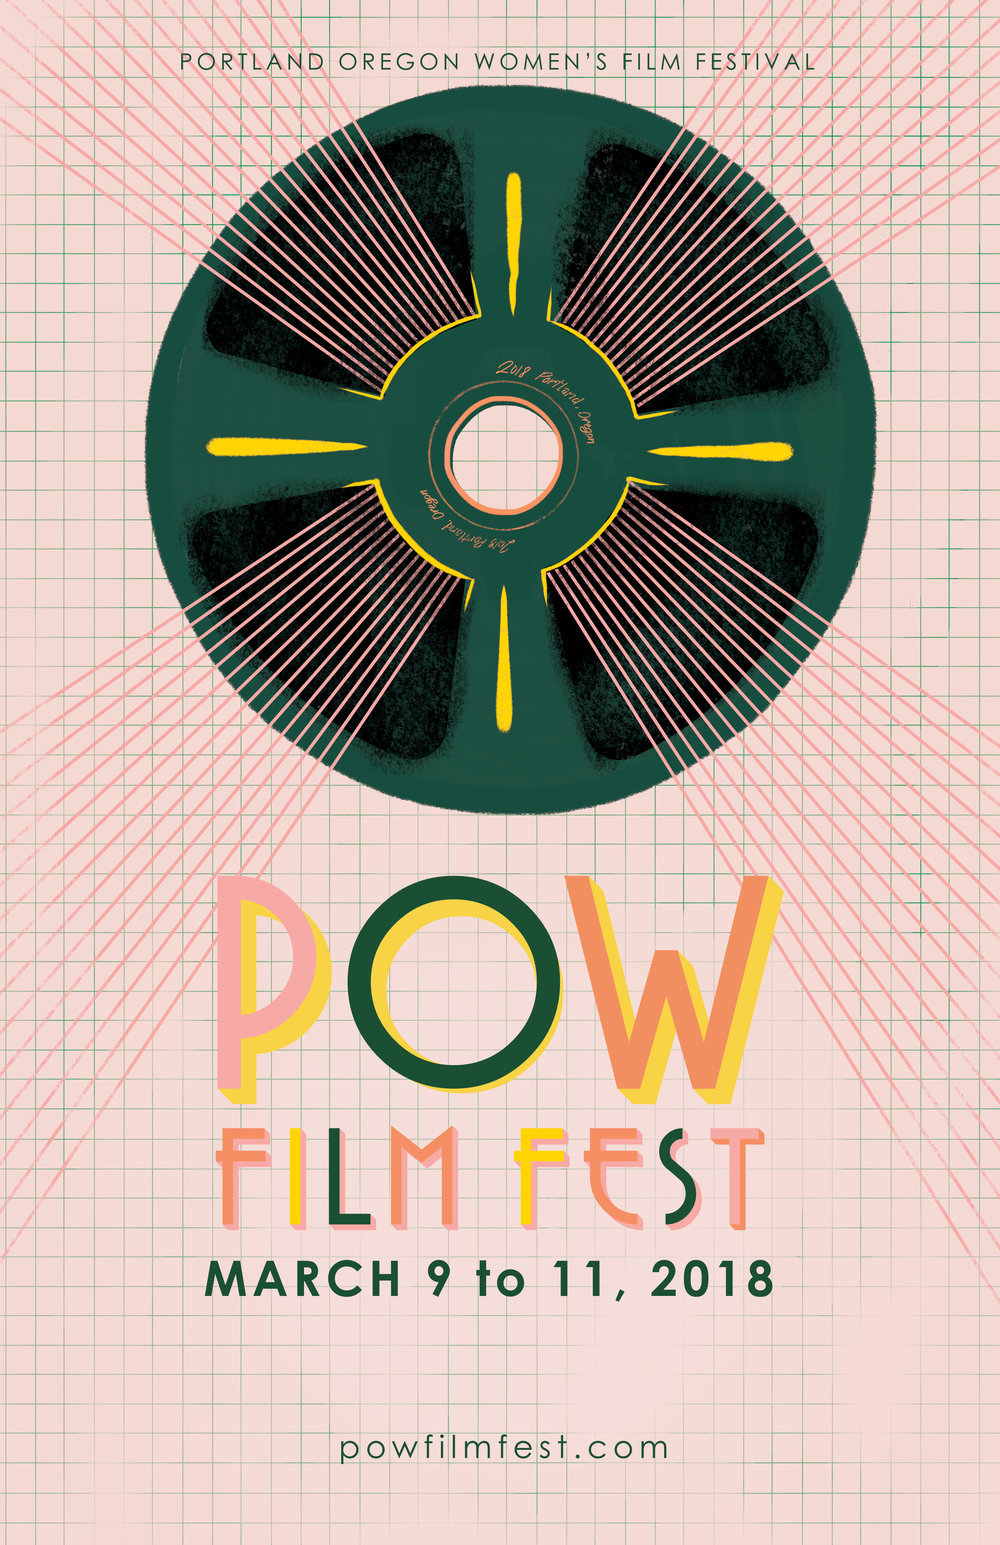 POW Film Festivalwebsite content coming soon. -